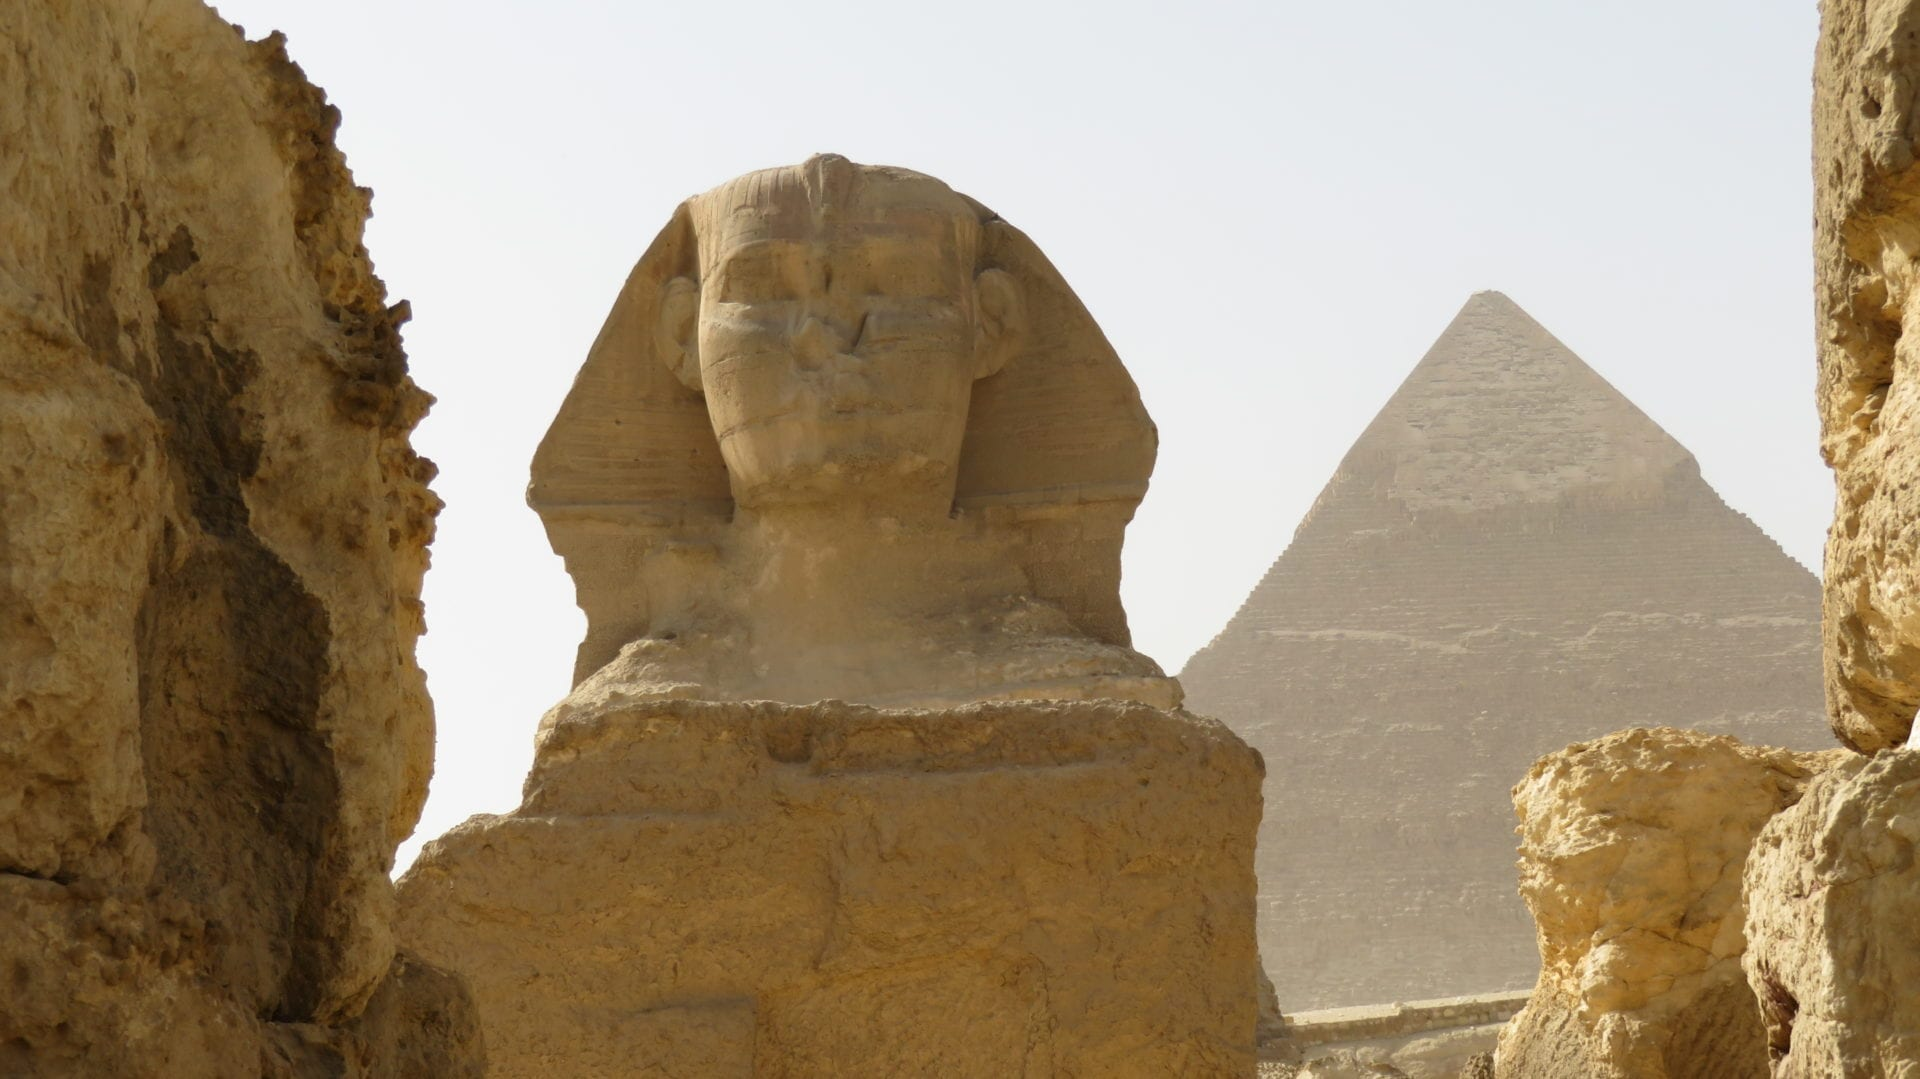 Sphinx, Giza Pyramids, Egypt, Eternal Egypt, 12 Days in Egypt